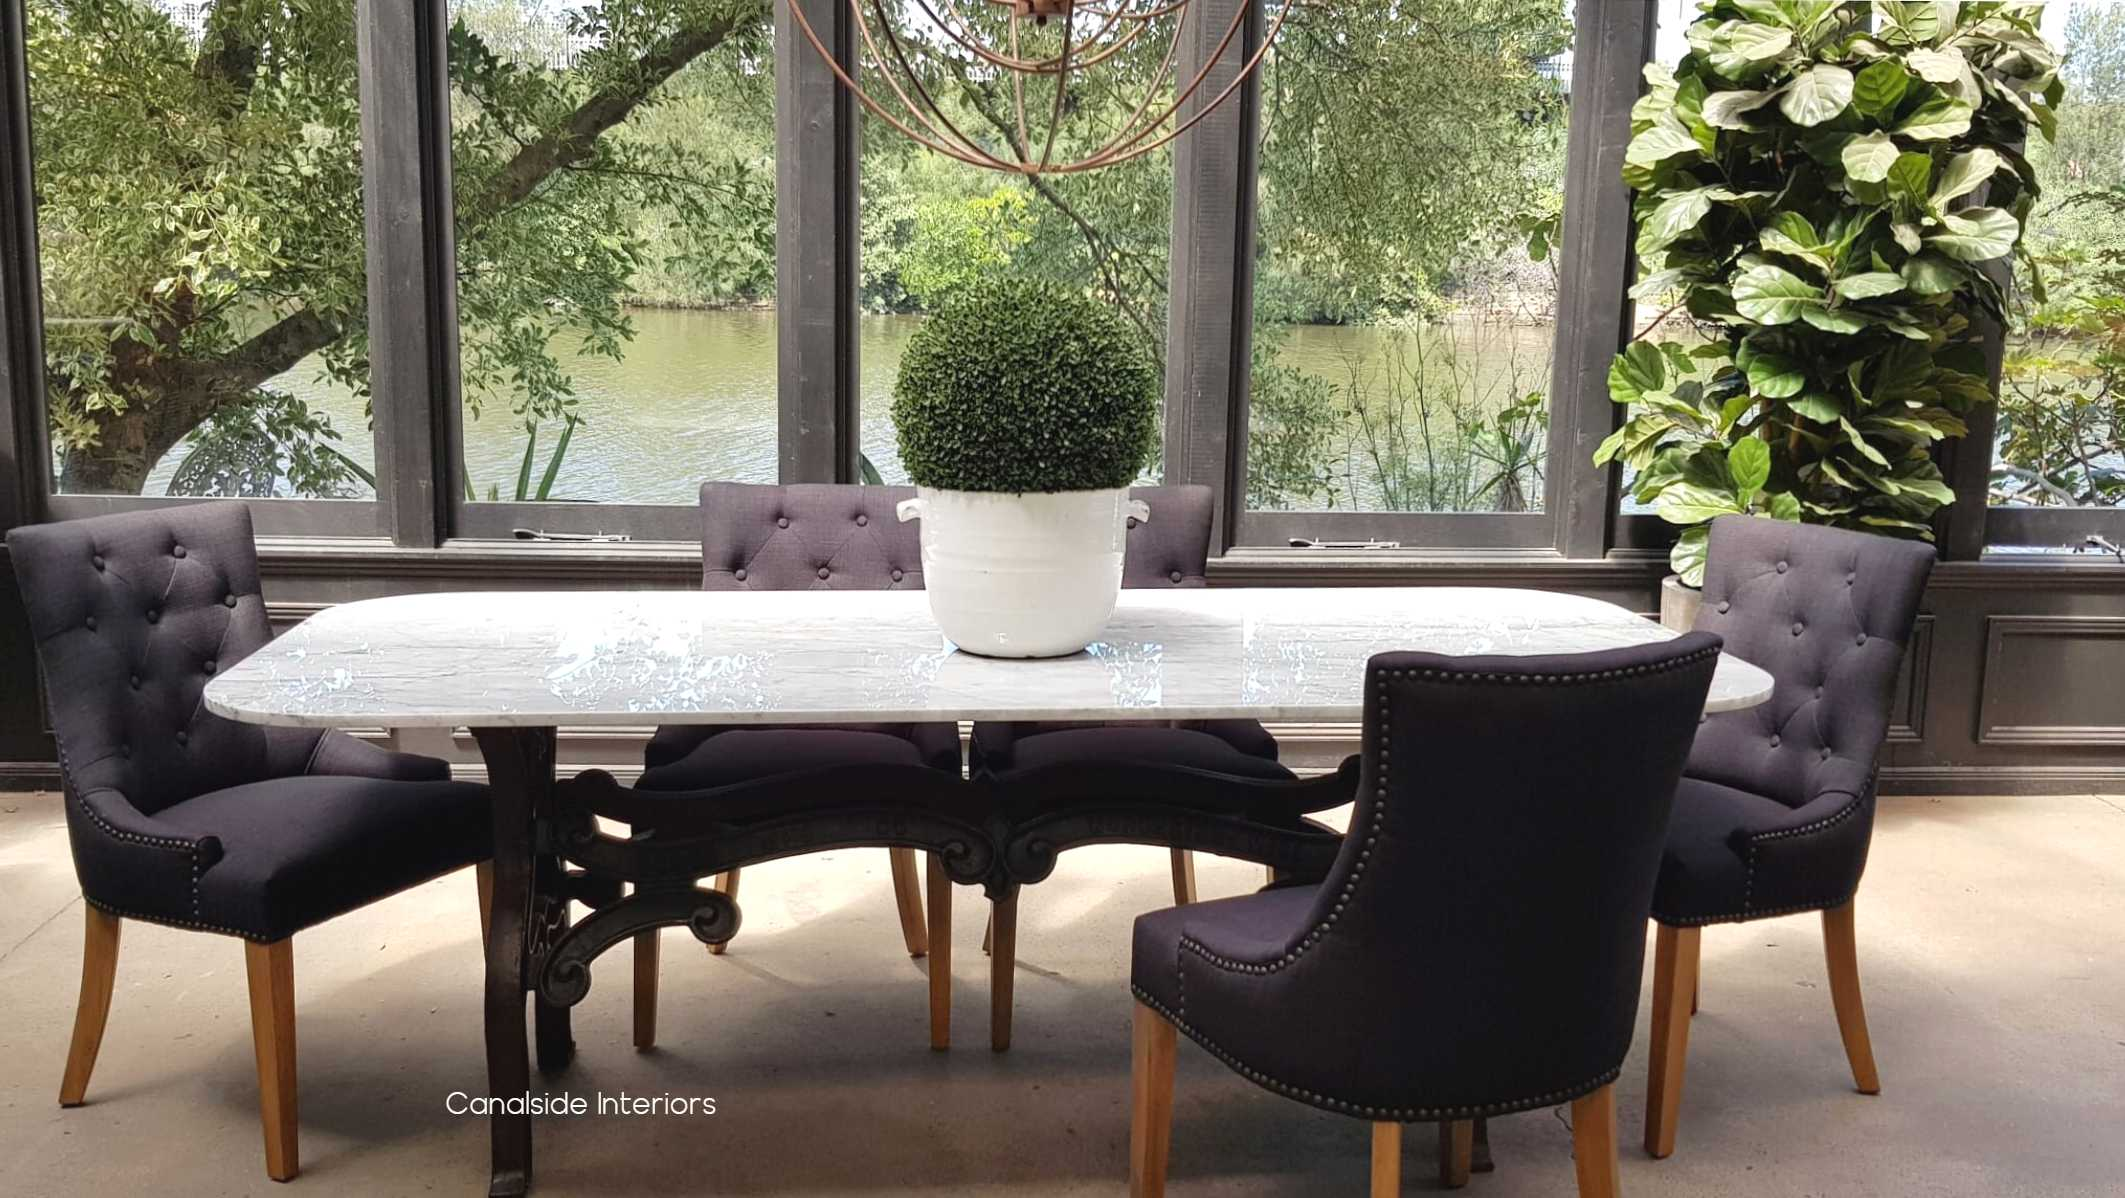 Hobbs Dining table with Carrara Marble Top - Canalside Interiors